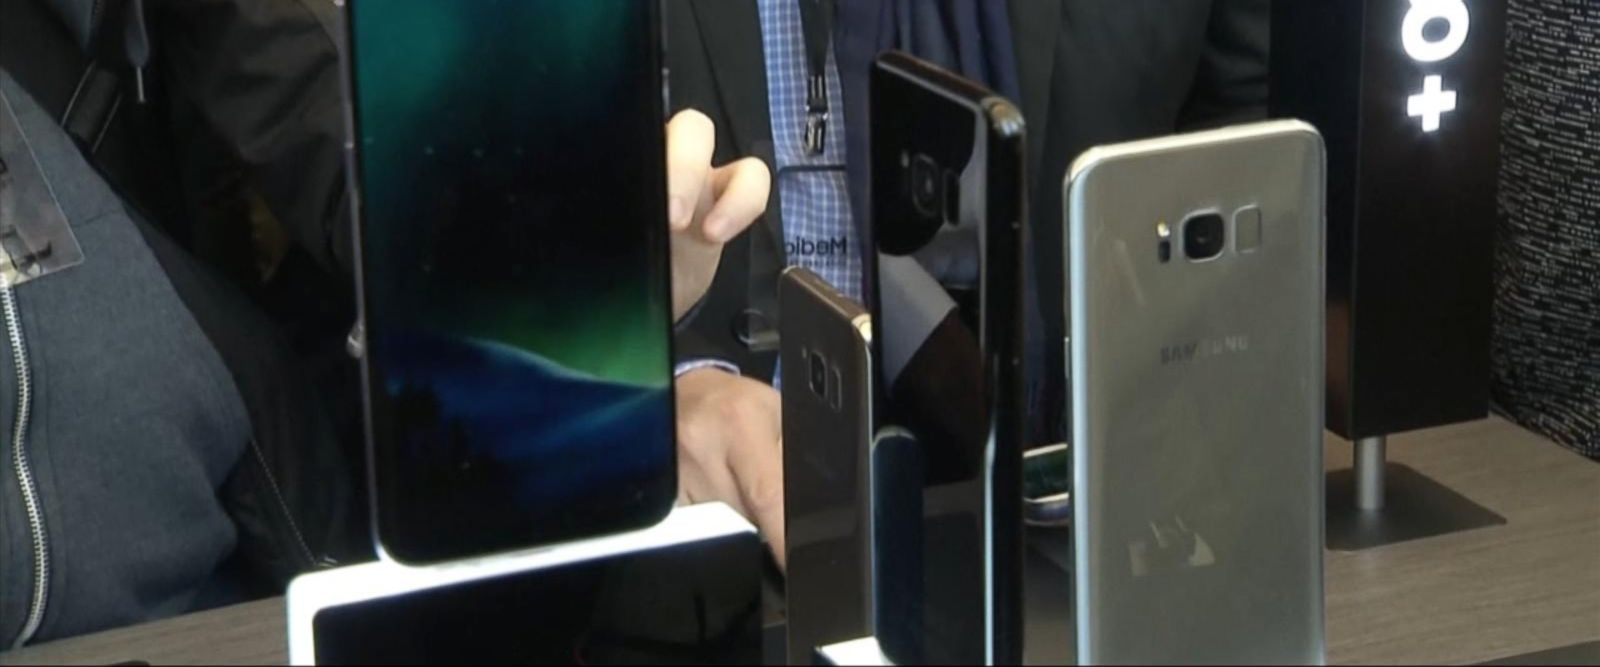 VIDEO: Samsung unveils Galaxy S8 smartphone